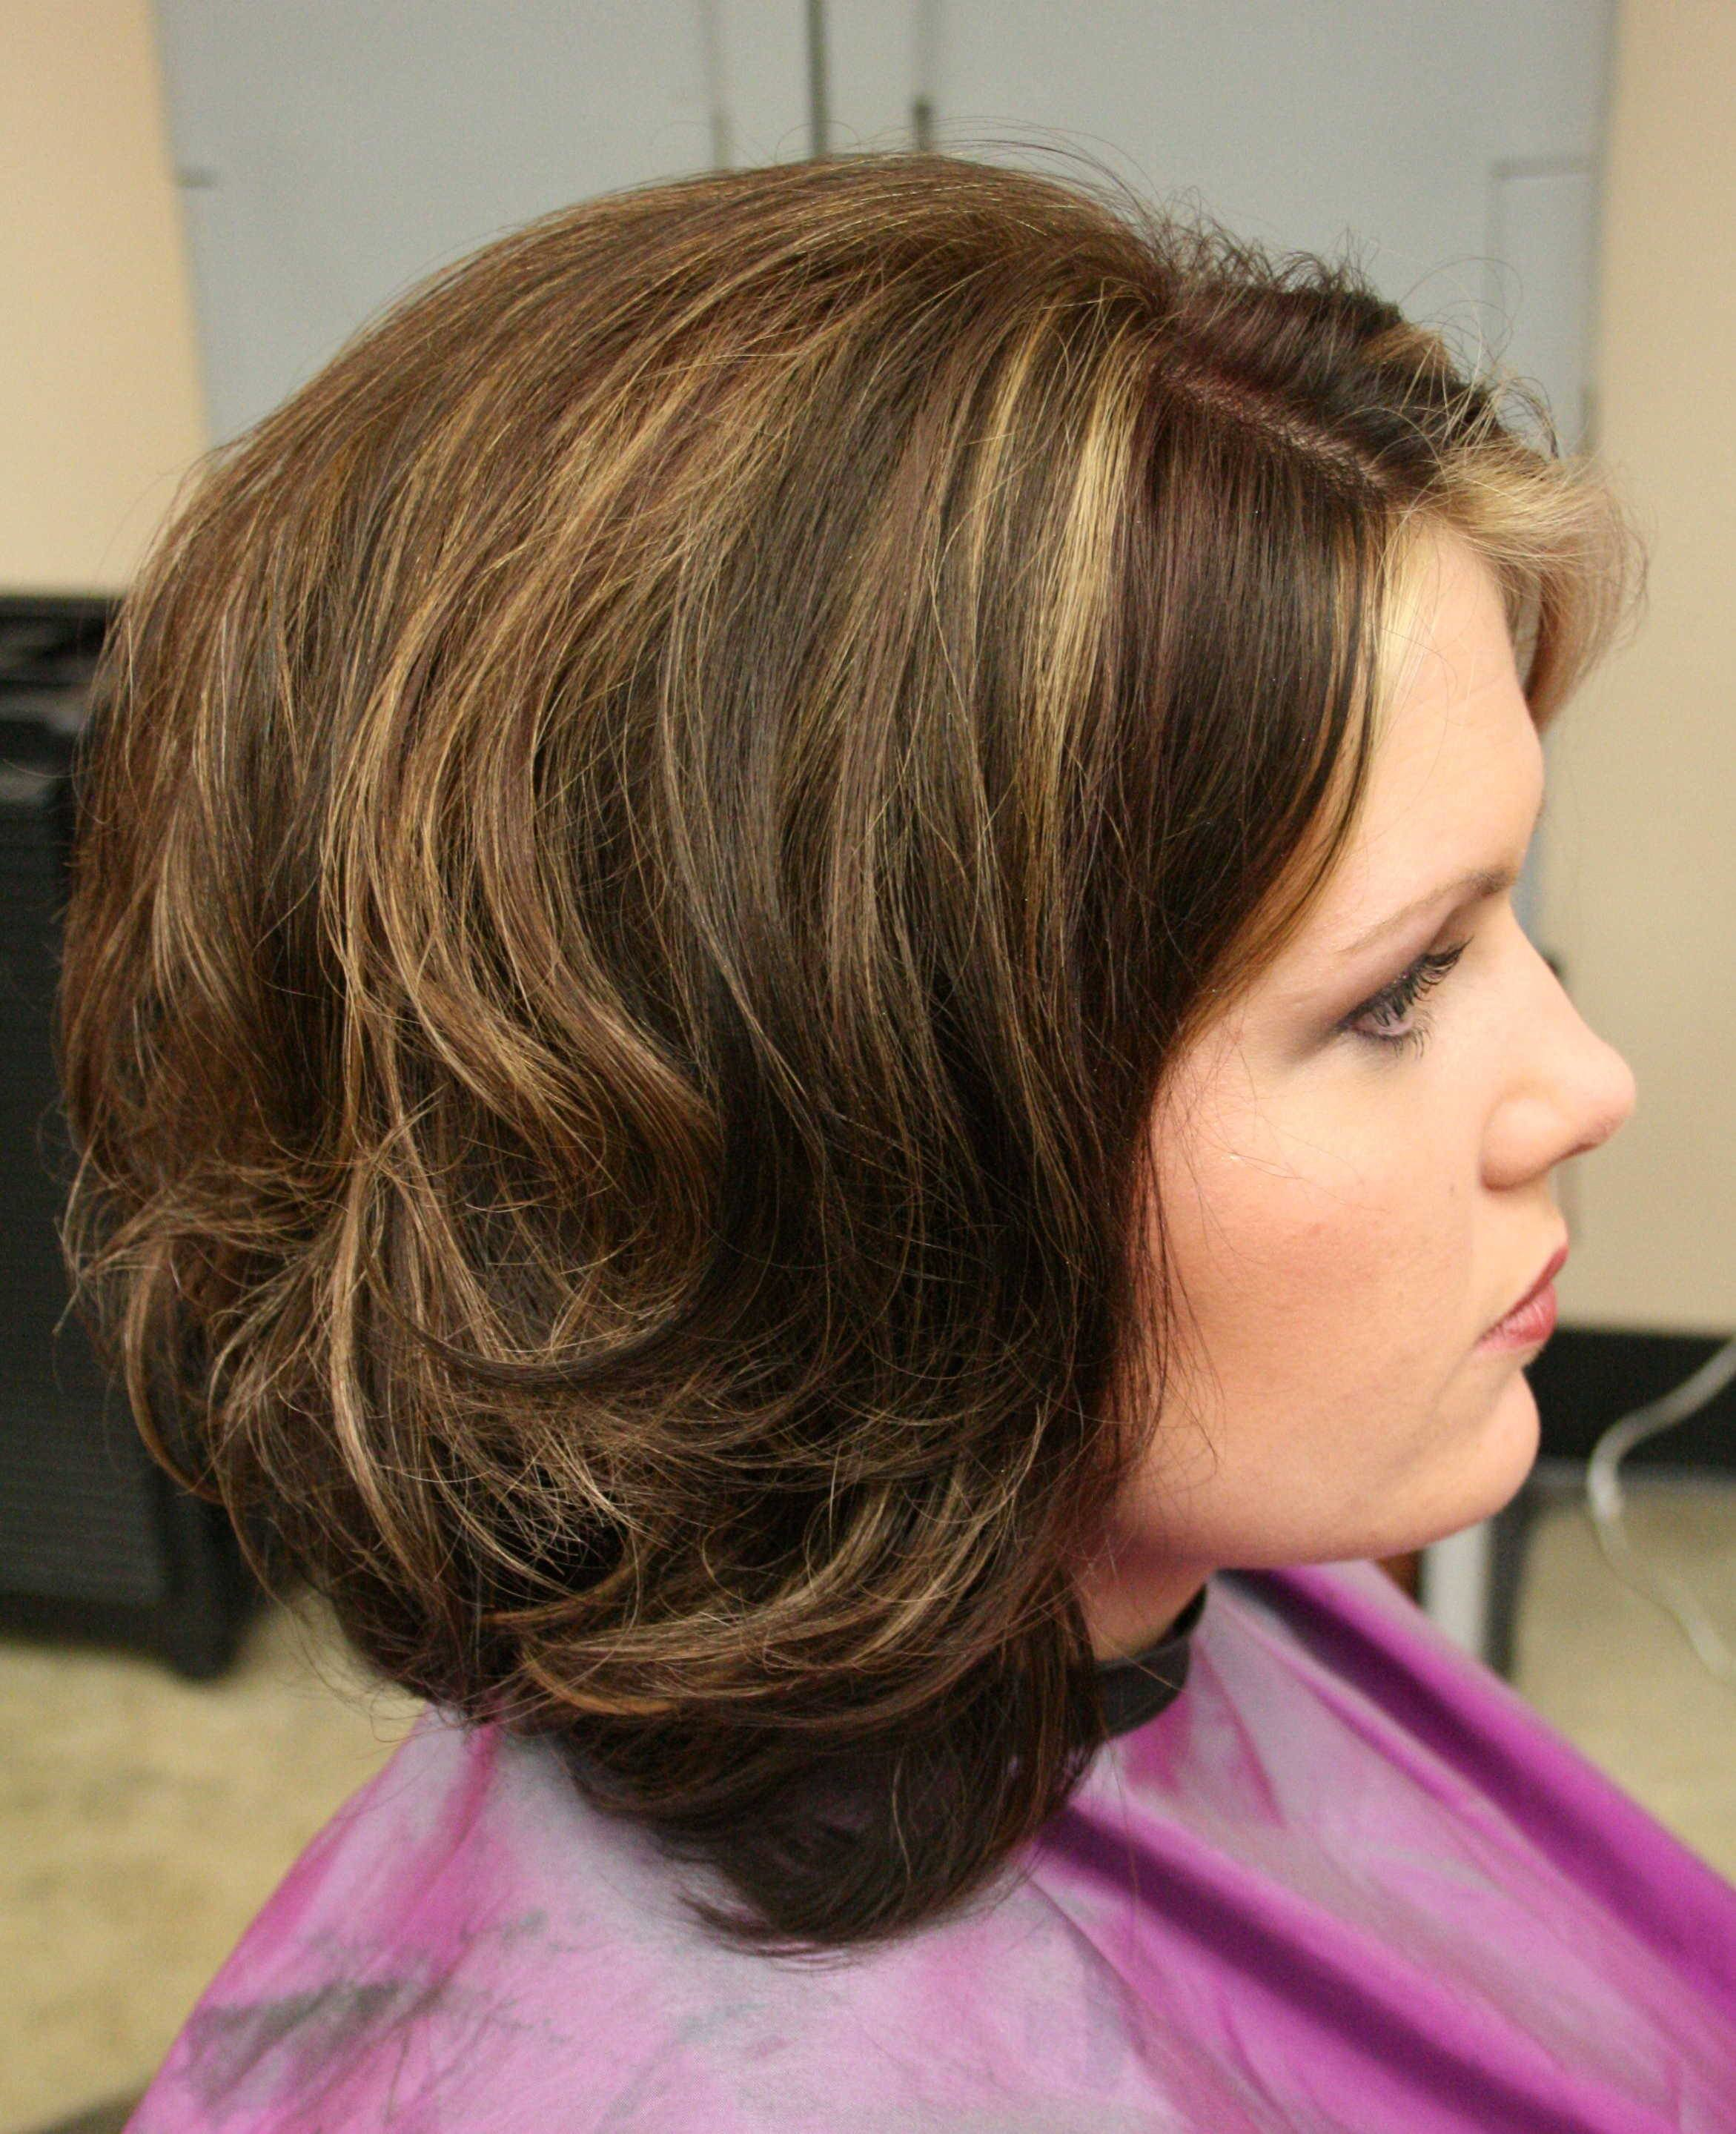 The Best Pictures Of Short Bob Haircuts Front And Back Hairstyle Pictures